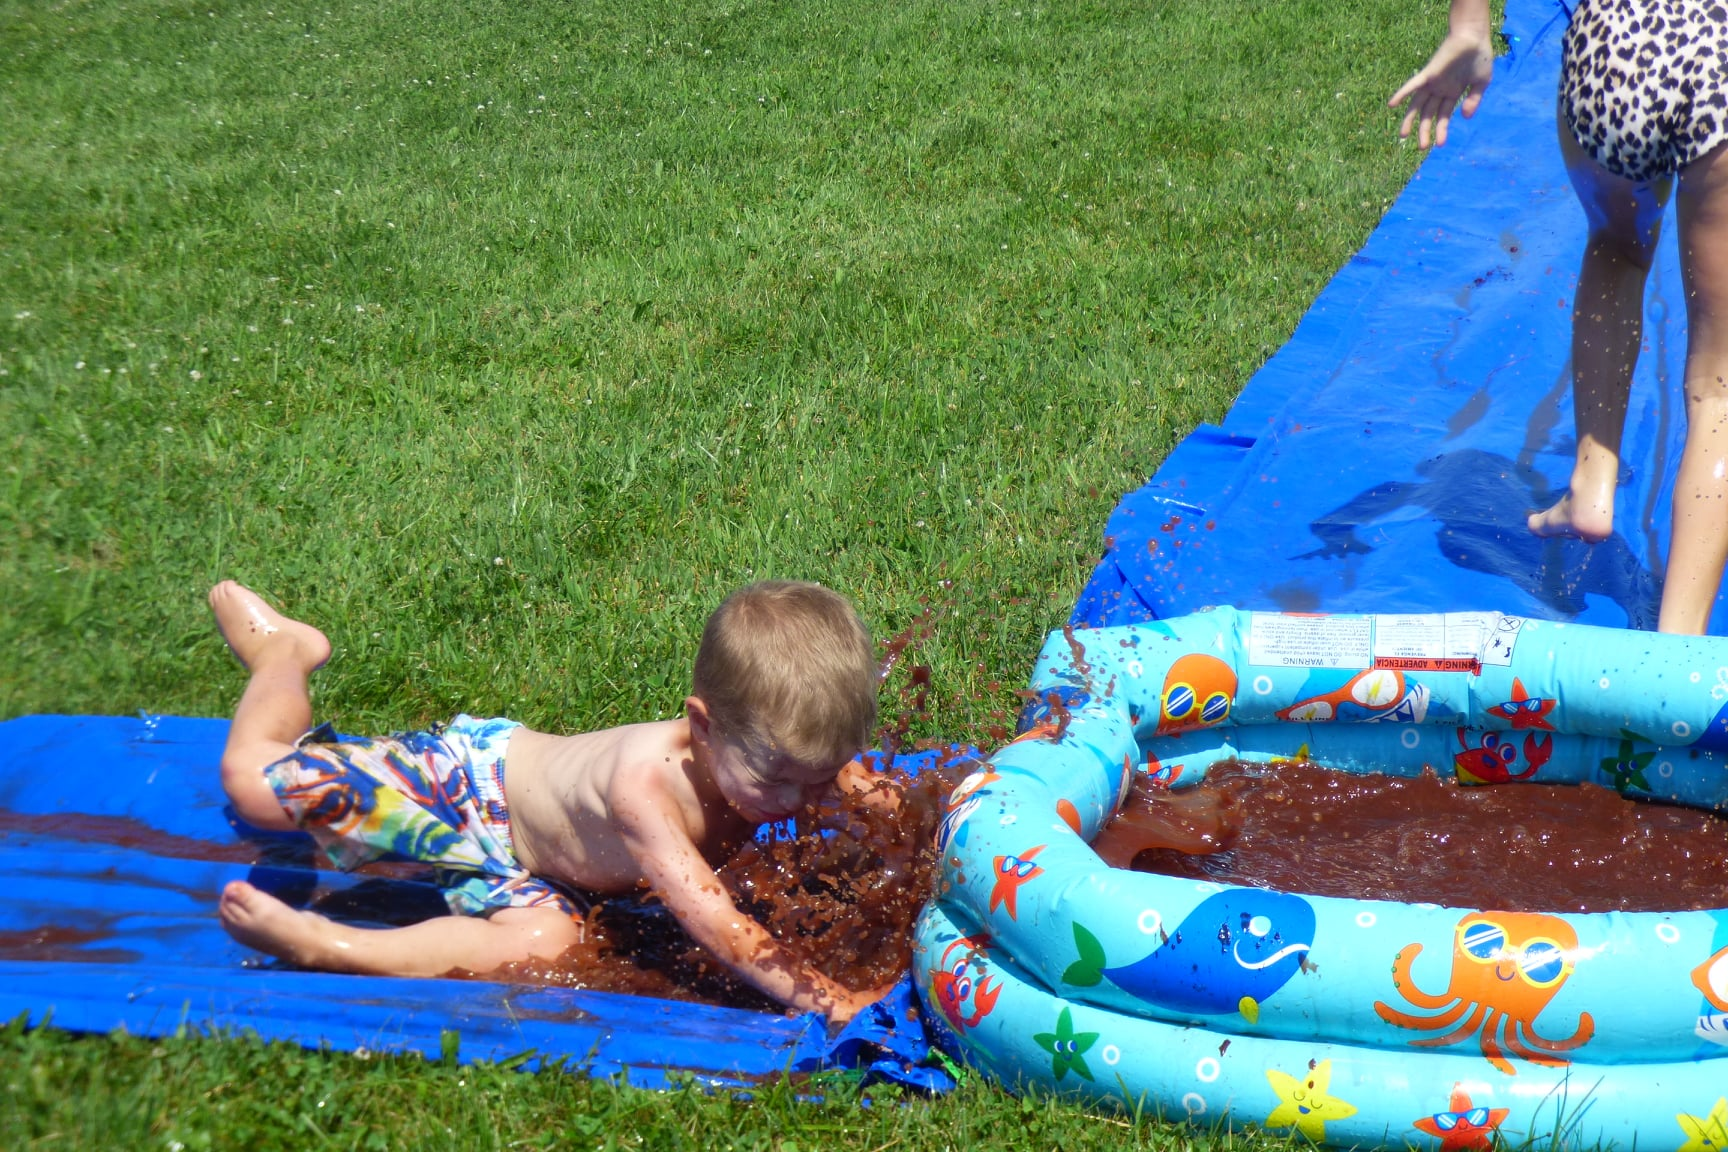 Chocolate Slip 'n Slide